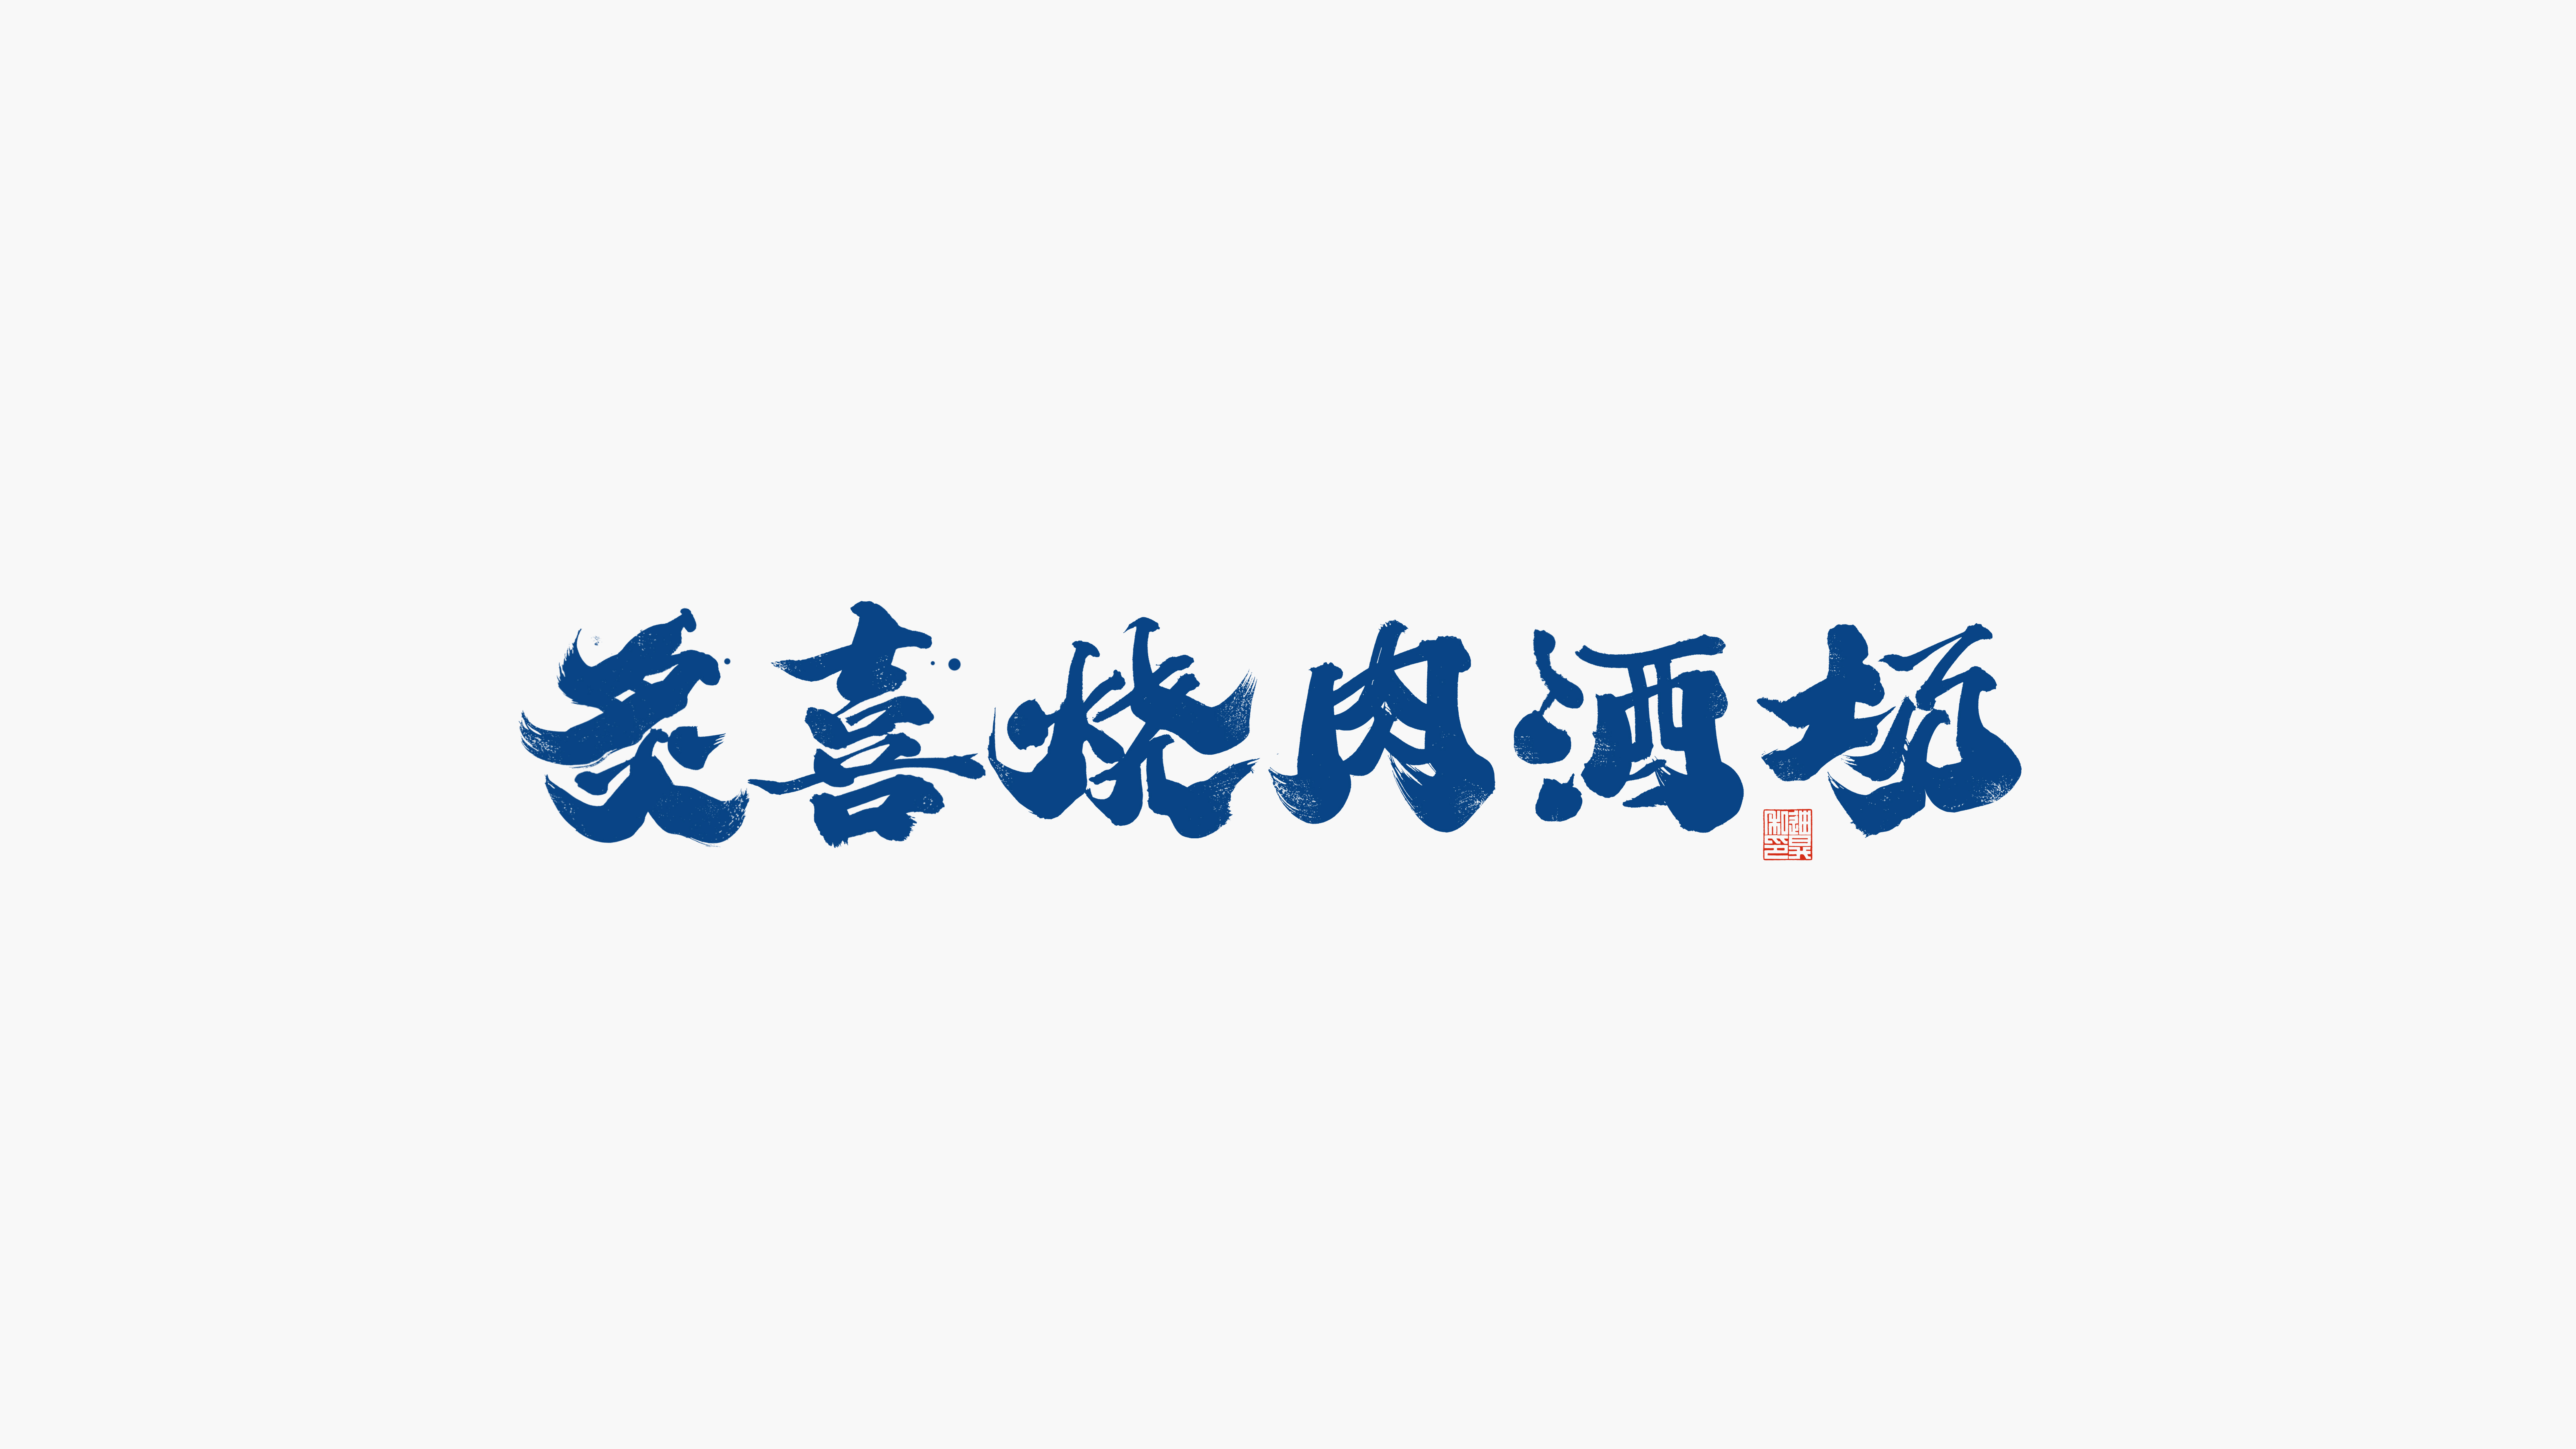 20P Collection of the latest Chinese font design schemes in 2021 #.133